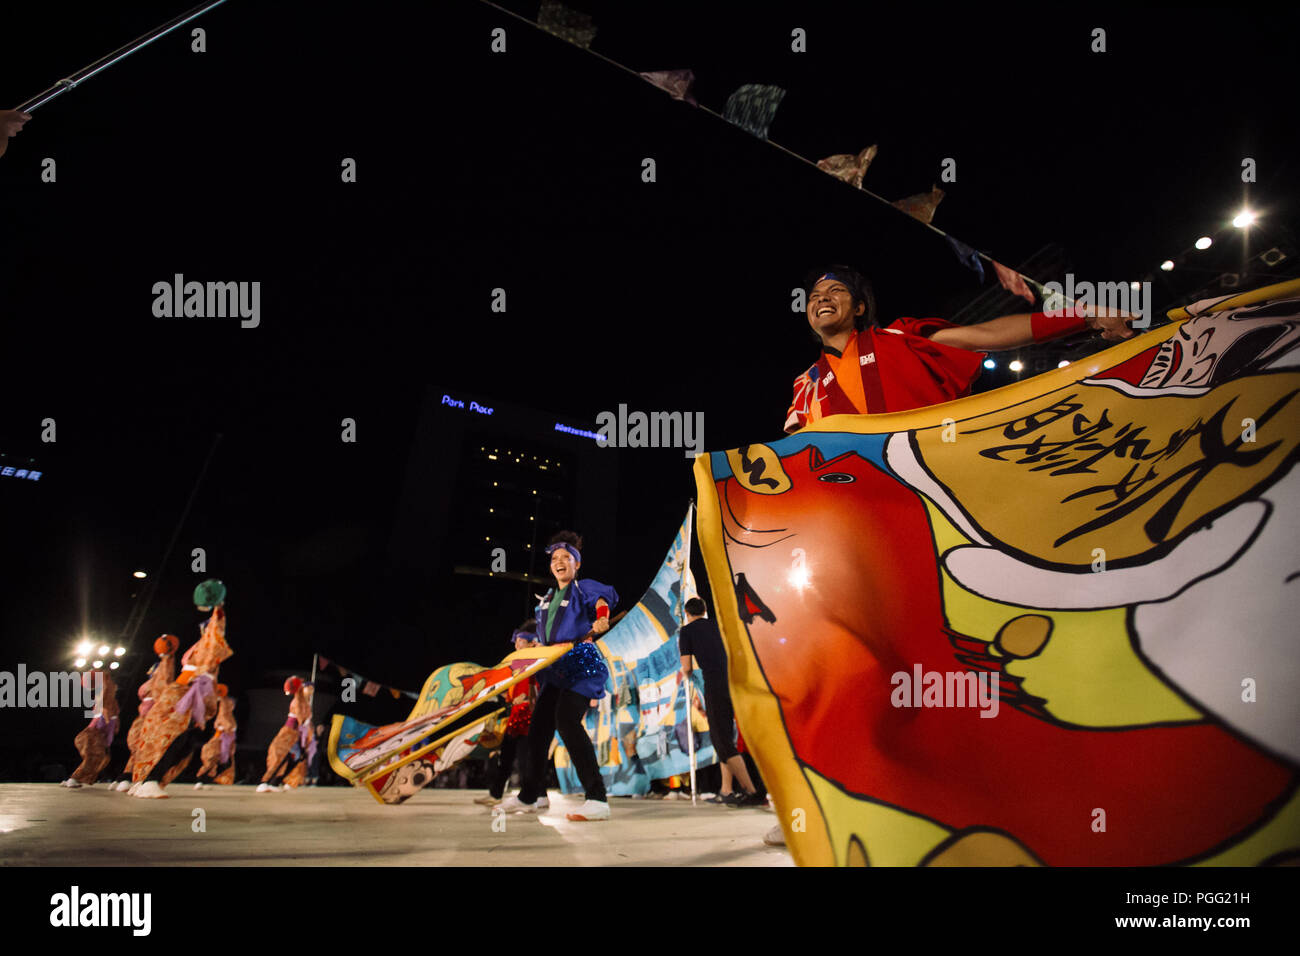 Nagoya, aichi, Japan. 26th Aug, 2018. Participants seen performing on the main stage.Nippon Domannaka Festival in Nagoya, Aichi. One of the largest dance festival in Japan. The festival had 210 dance teams with 23,000 performers from inside and outside Japan, and about 2 million viewers. Credit: Takahiro Yoshida/SOPA Images/ZUMA Wire/Alamy Live News - Stock Image